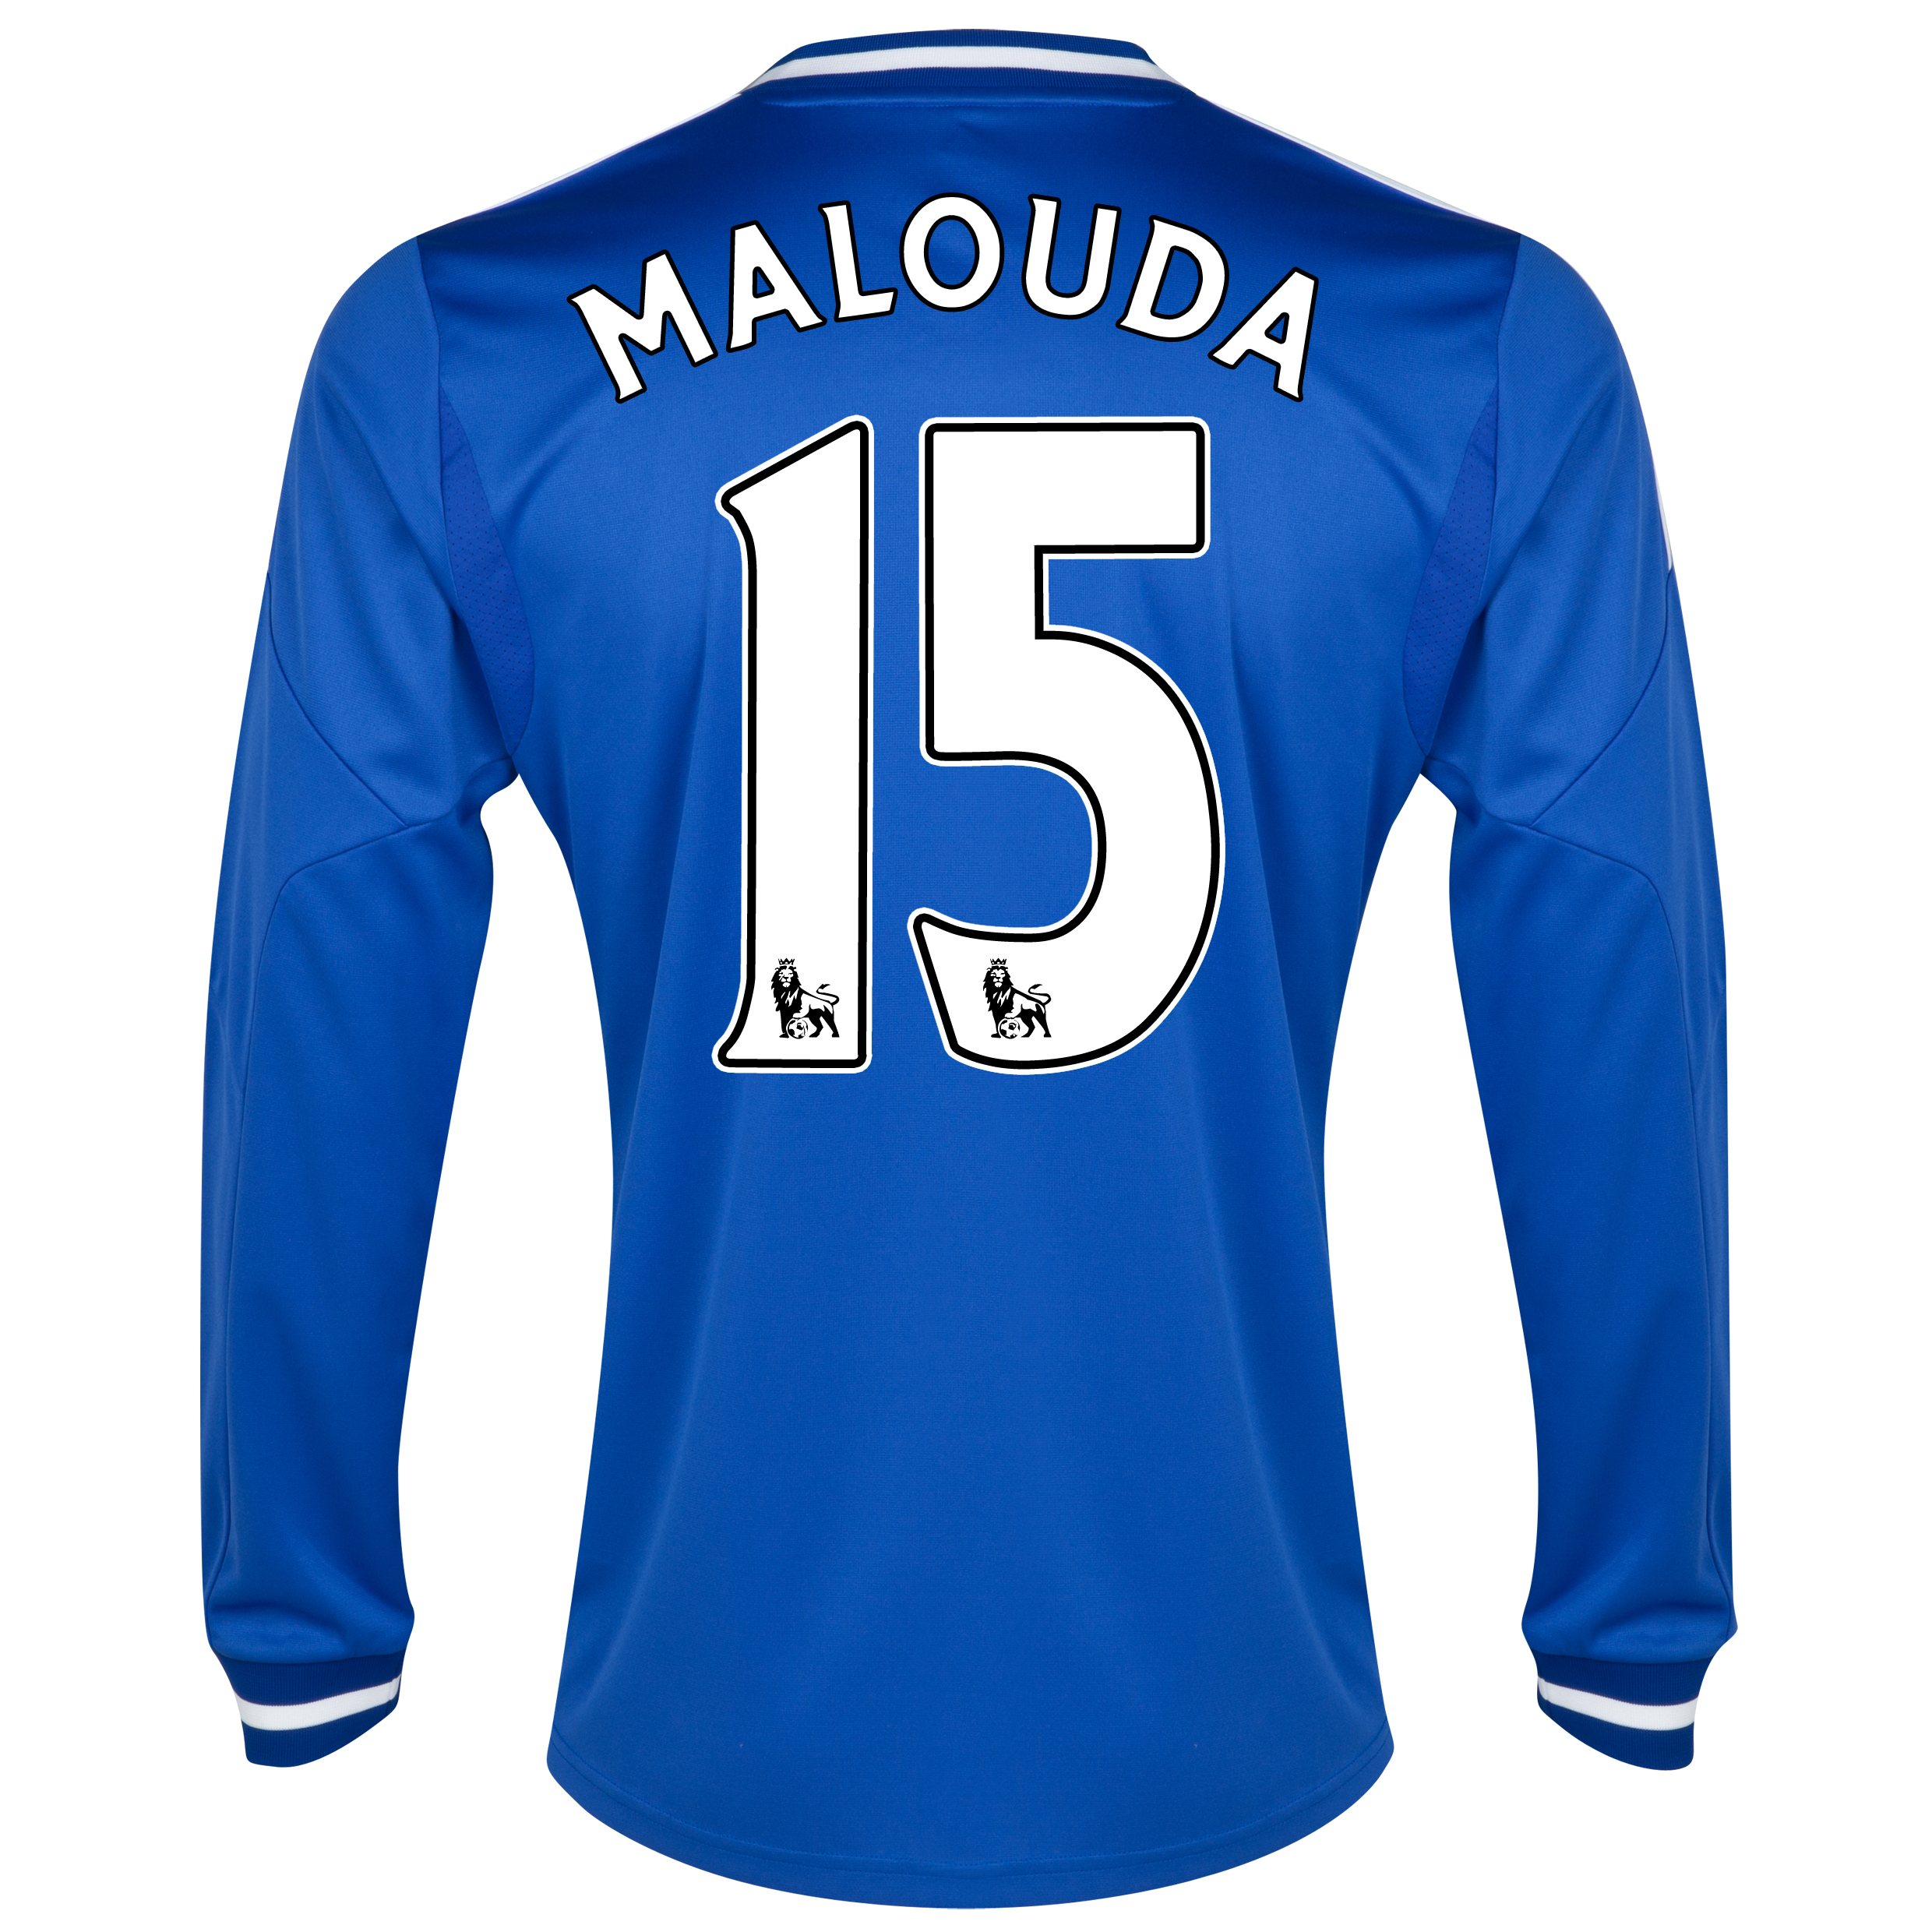 Chelsea Home Shirt 2013/14 - Long Sleeve - Kids with Malouda 15 printing